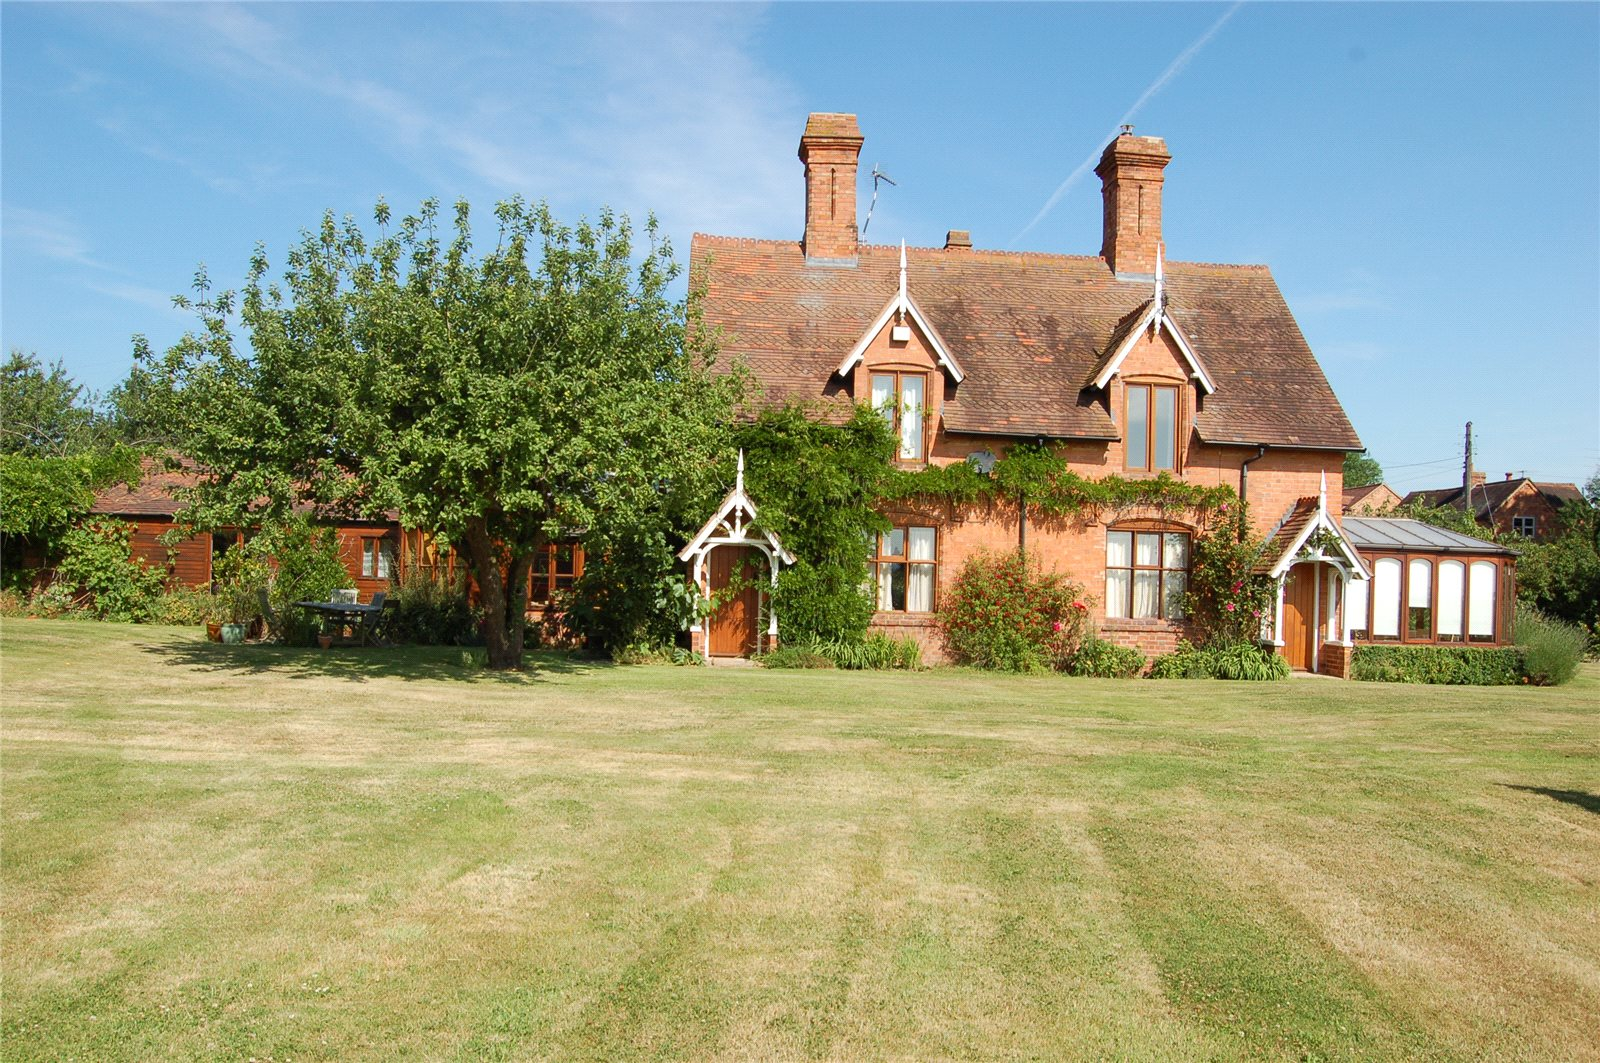 Частный дом для того Продажа на Kings Lane, Snitterfield, Stratford-upon-Avon, Warwickshire, CV37 Stratford Upon Avon, Англия